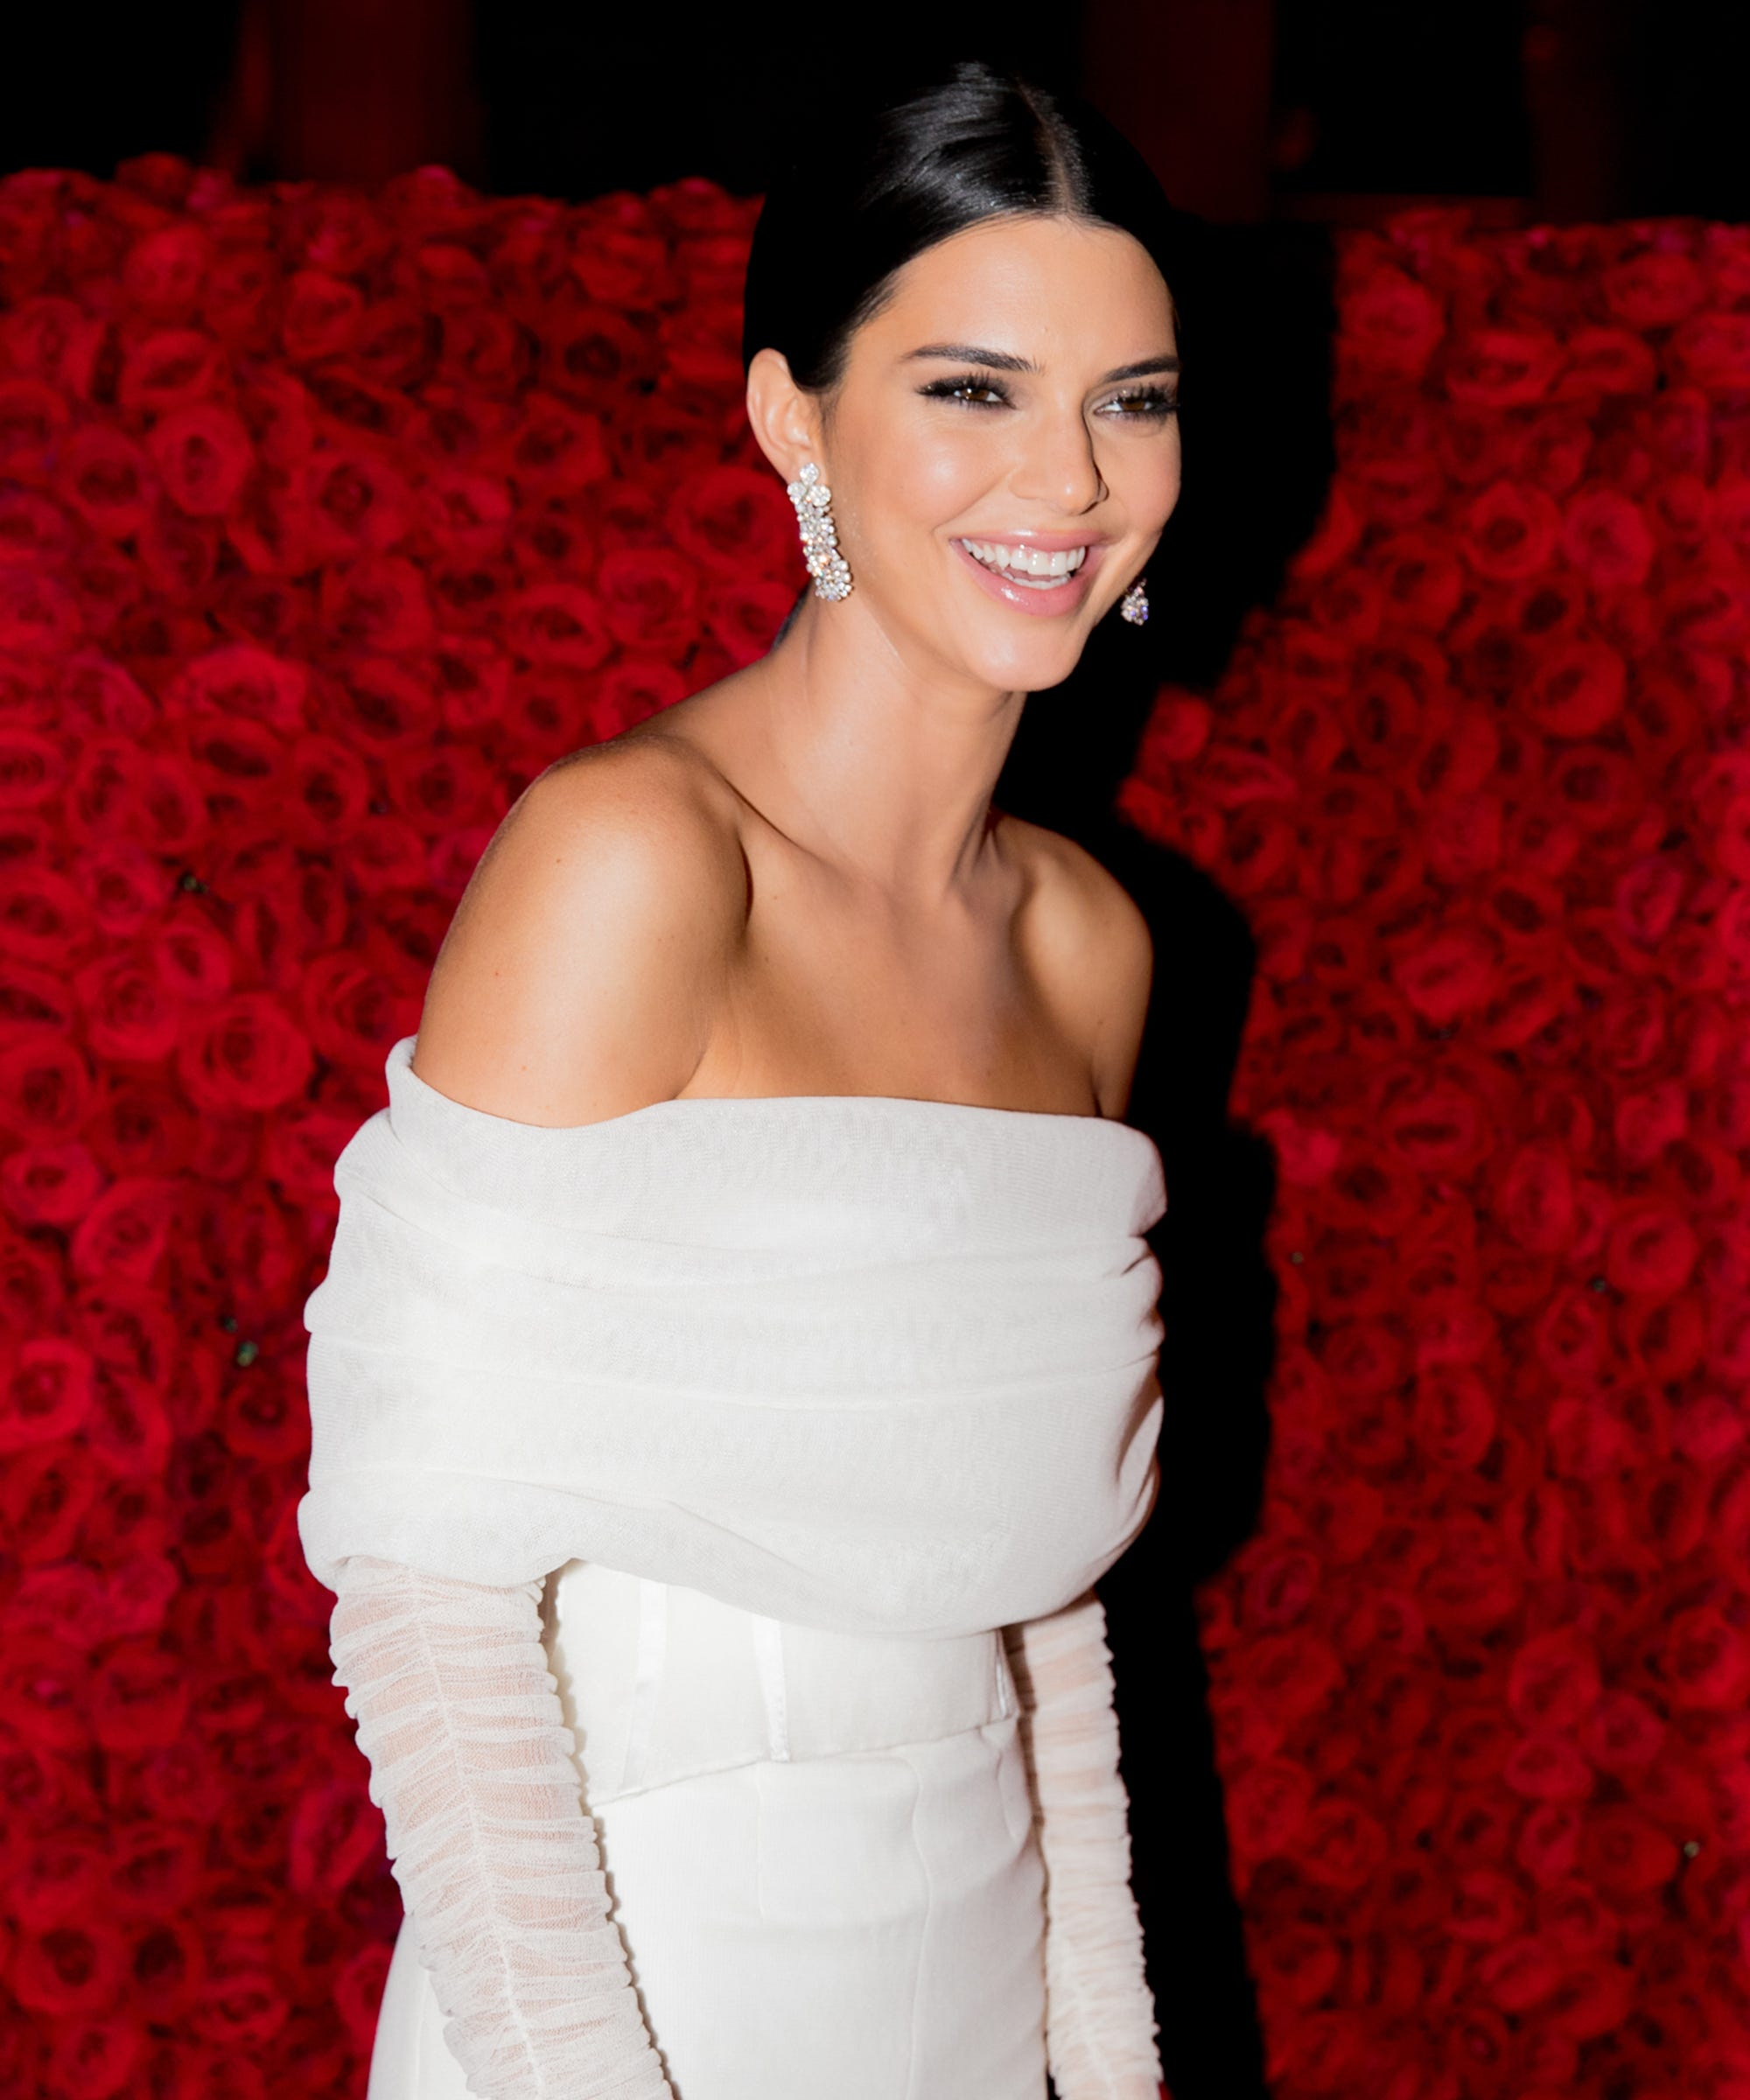 Kendall Jenner On The One Beauty Product She Always Uses Before A Date